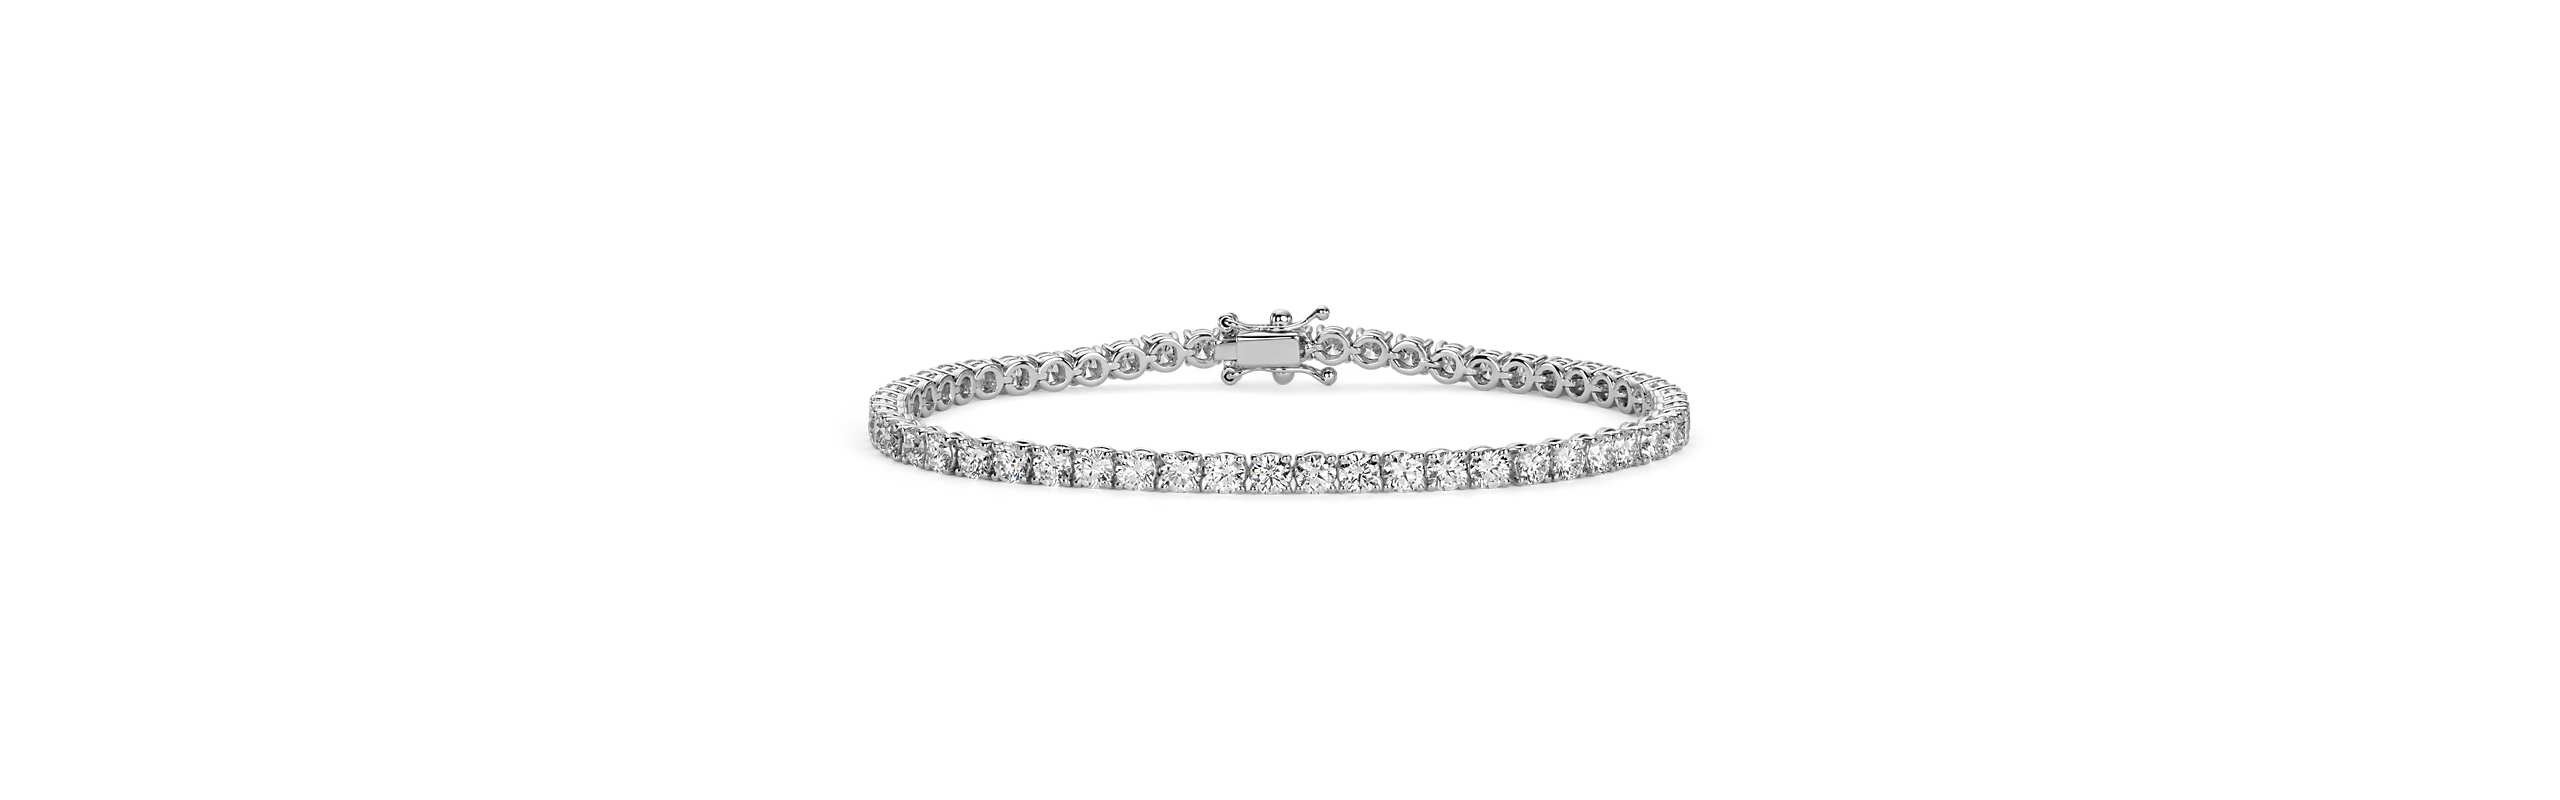 Diamond Tennis Bracelets 50% off